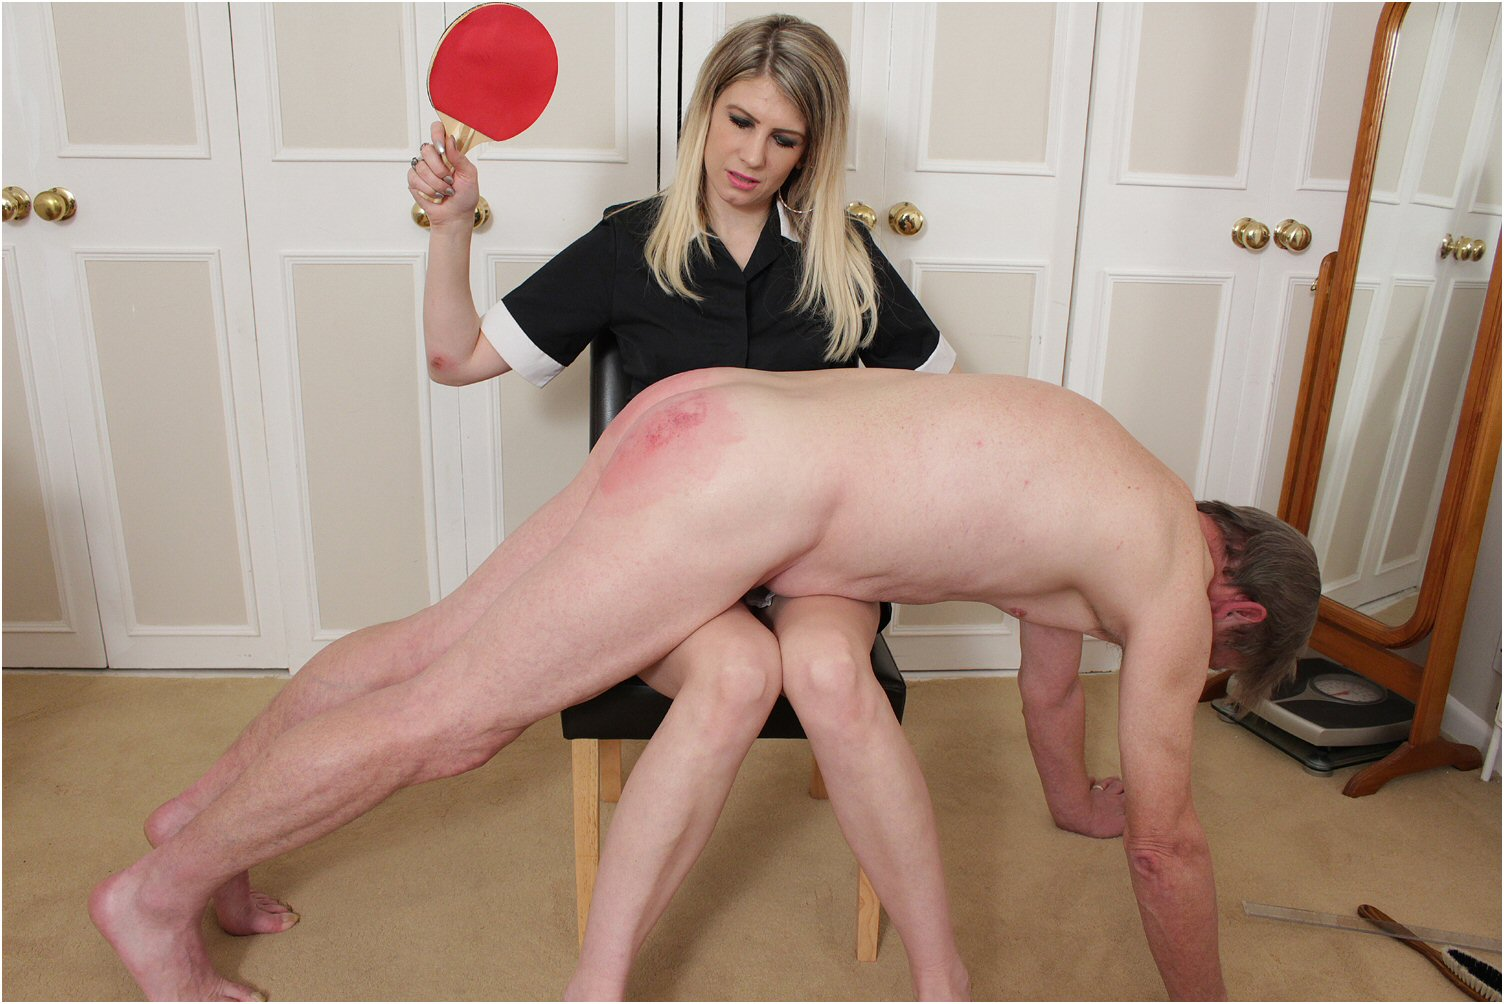 Women spanking men hard